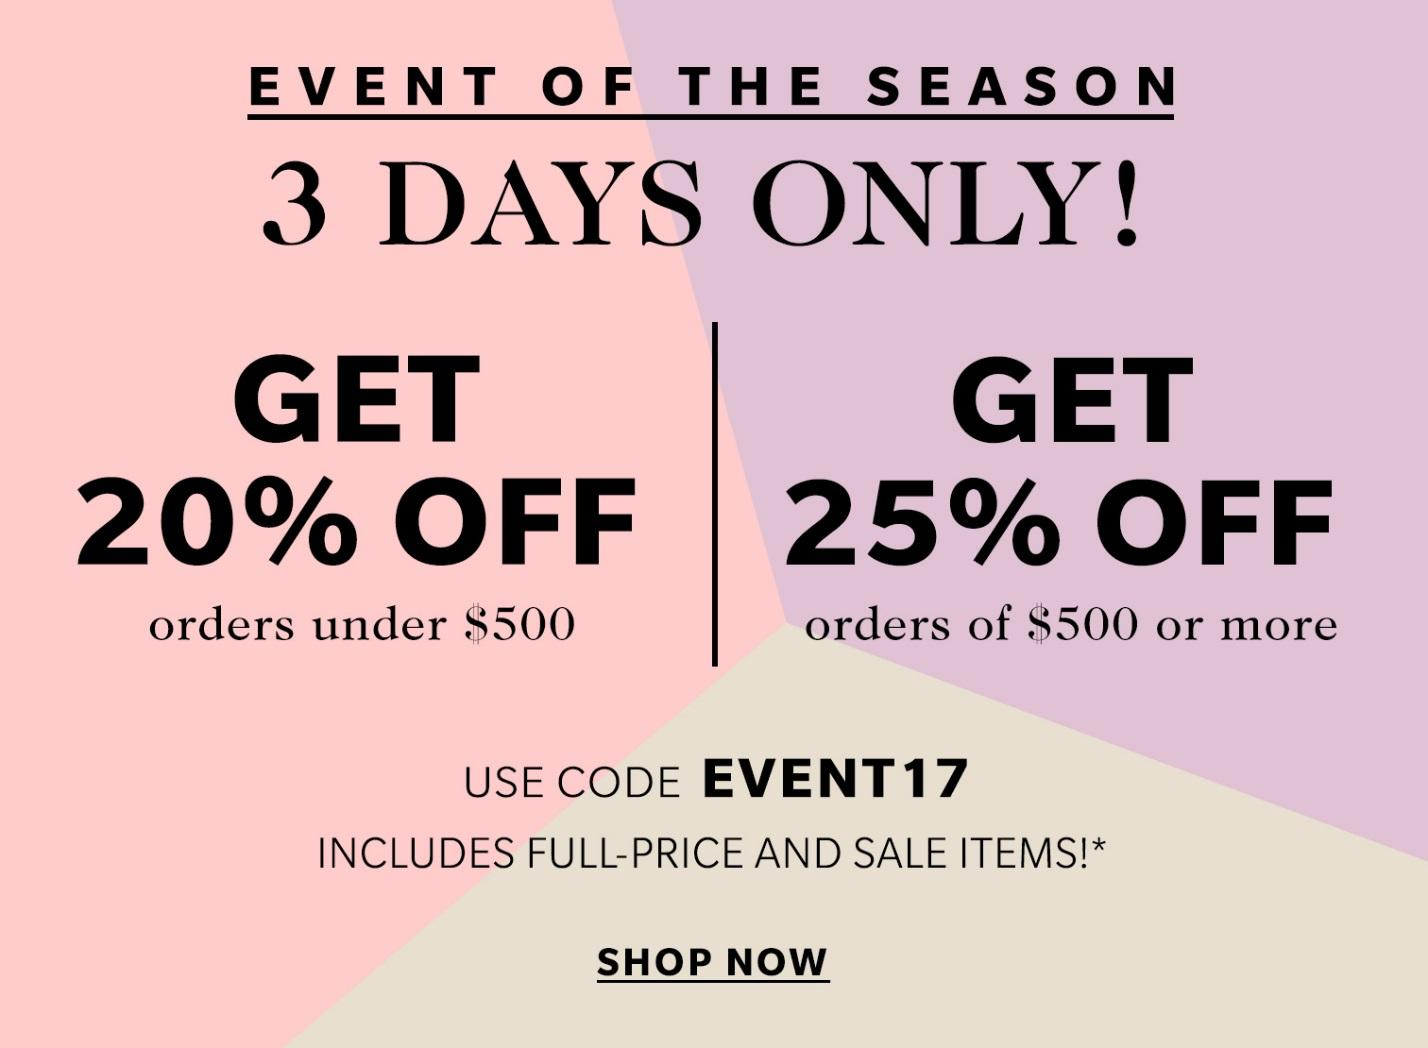 Shopbop sale with up to 25% off designer pieces